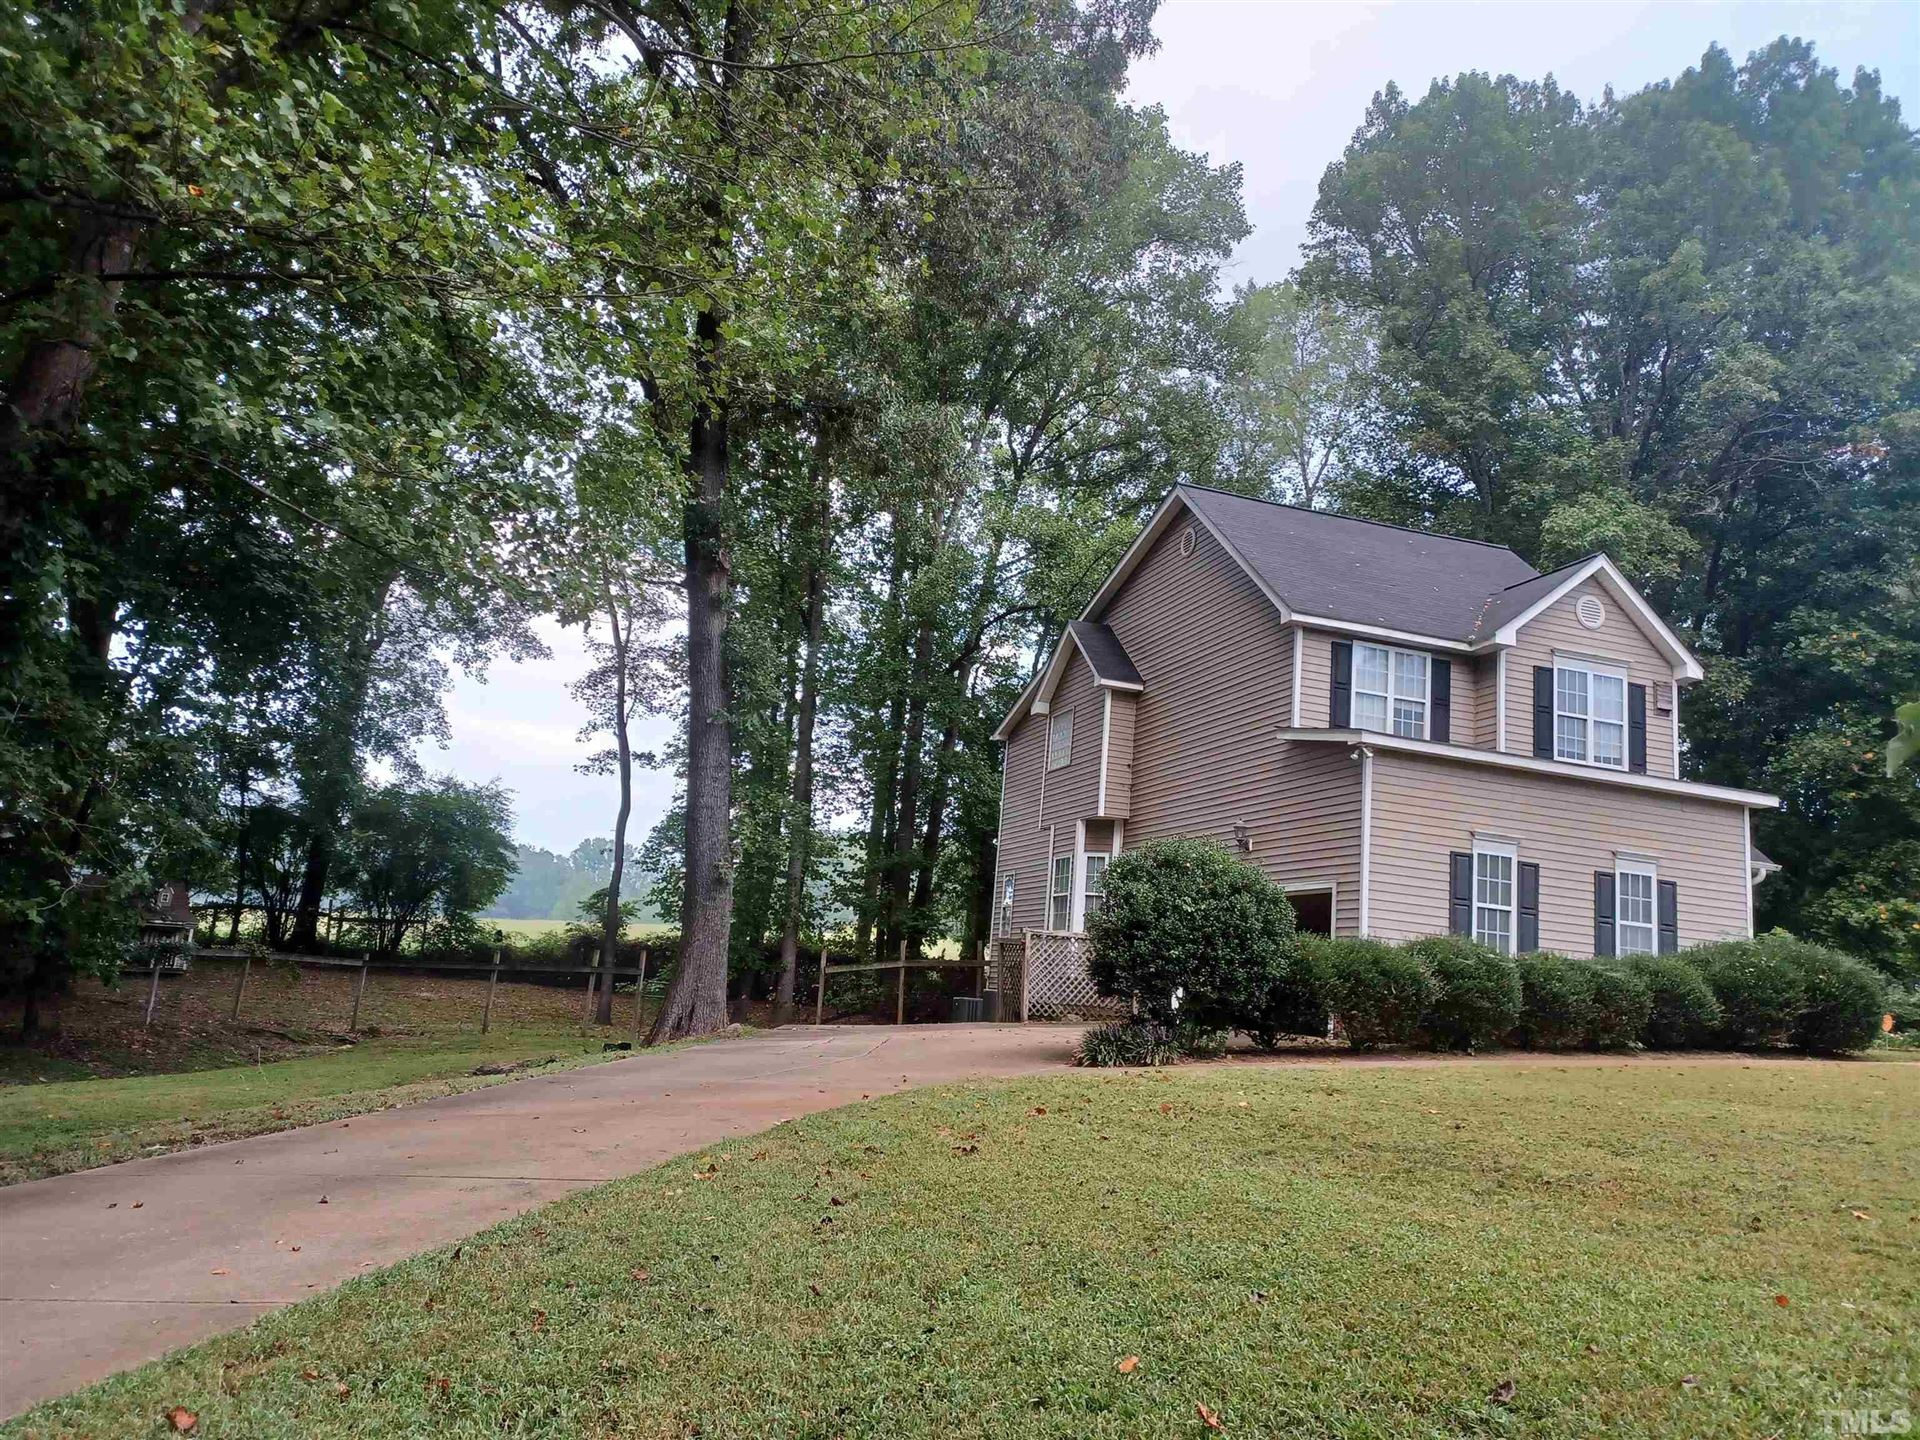 Photo of 1209 Jogging Court, Raleigh, NC 27603 (MLS # 2408831)